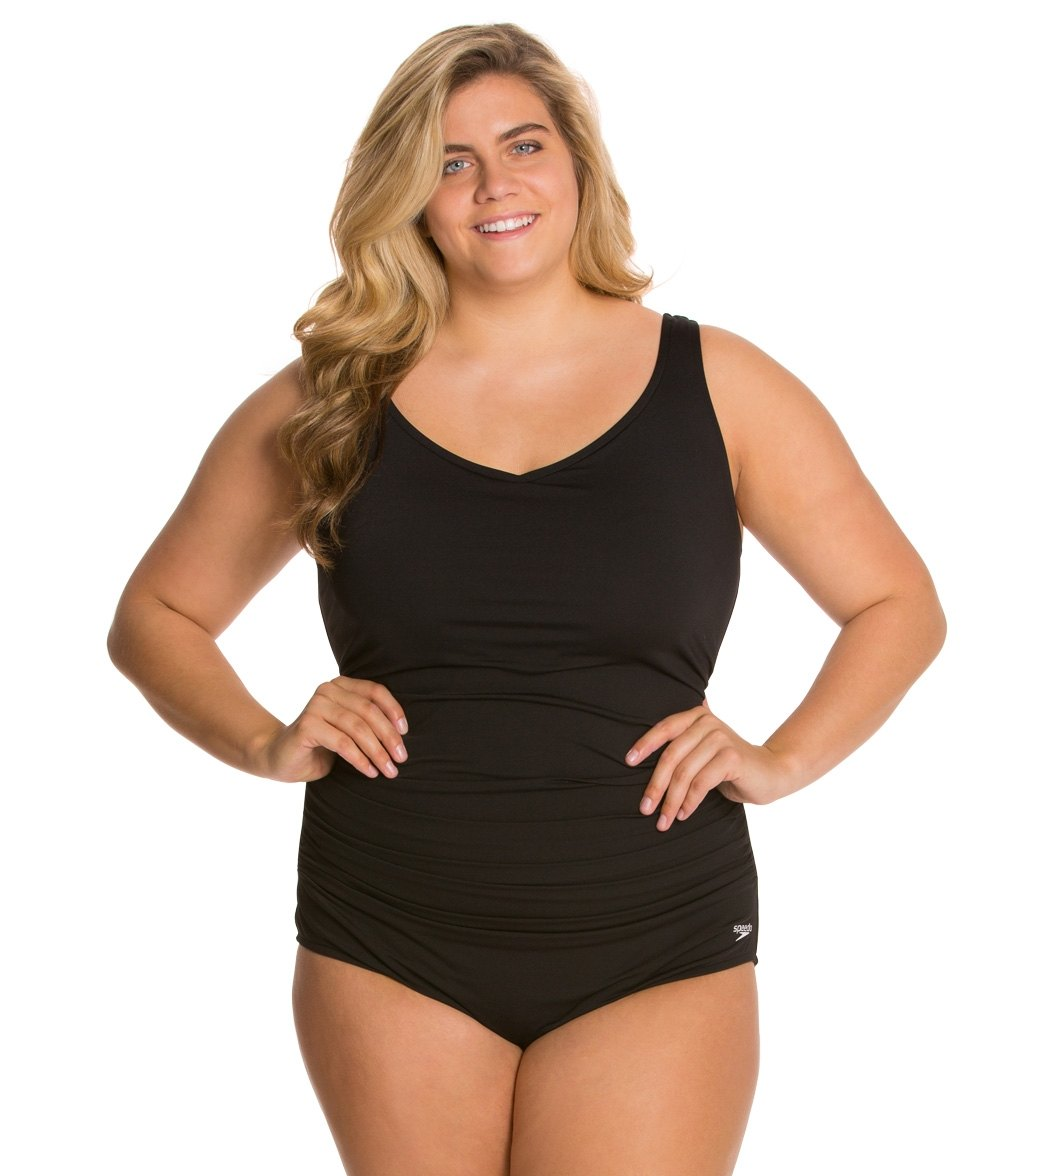 489136ca4a3341 Speedo Endurance Side Shirred Contourback Plus Size One Piece Swimsuit at  SwimOutlet.com - Free Shipping